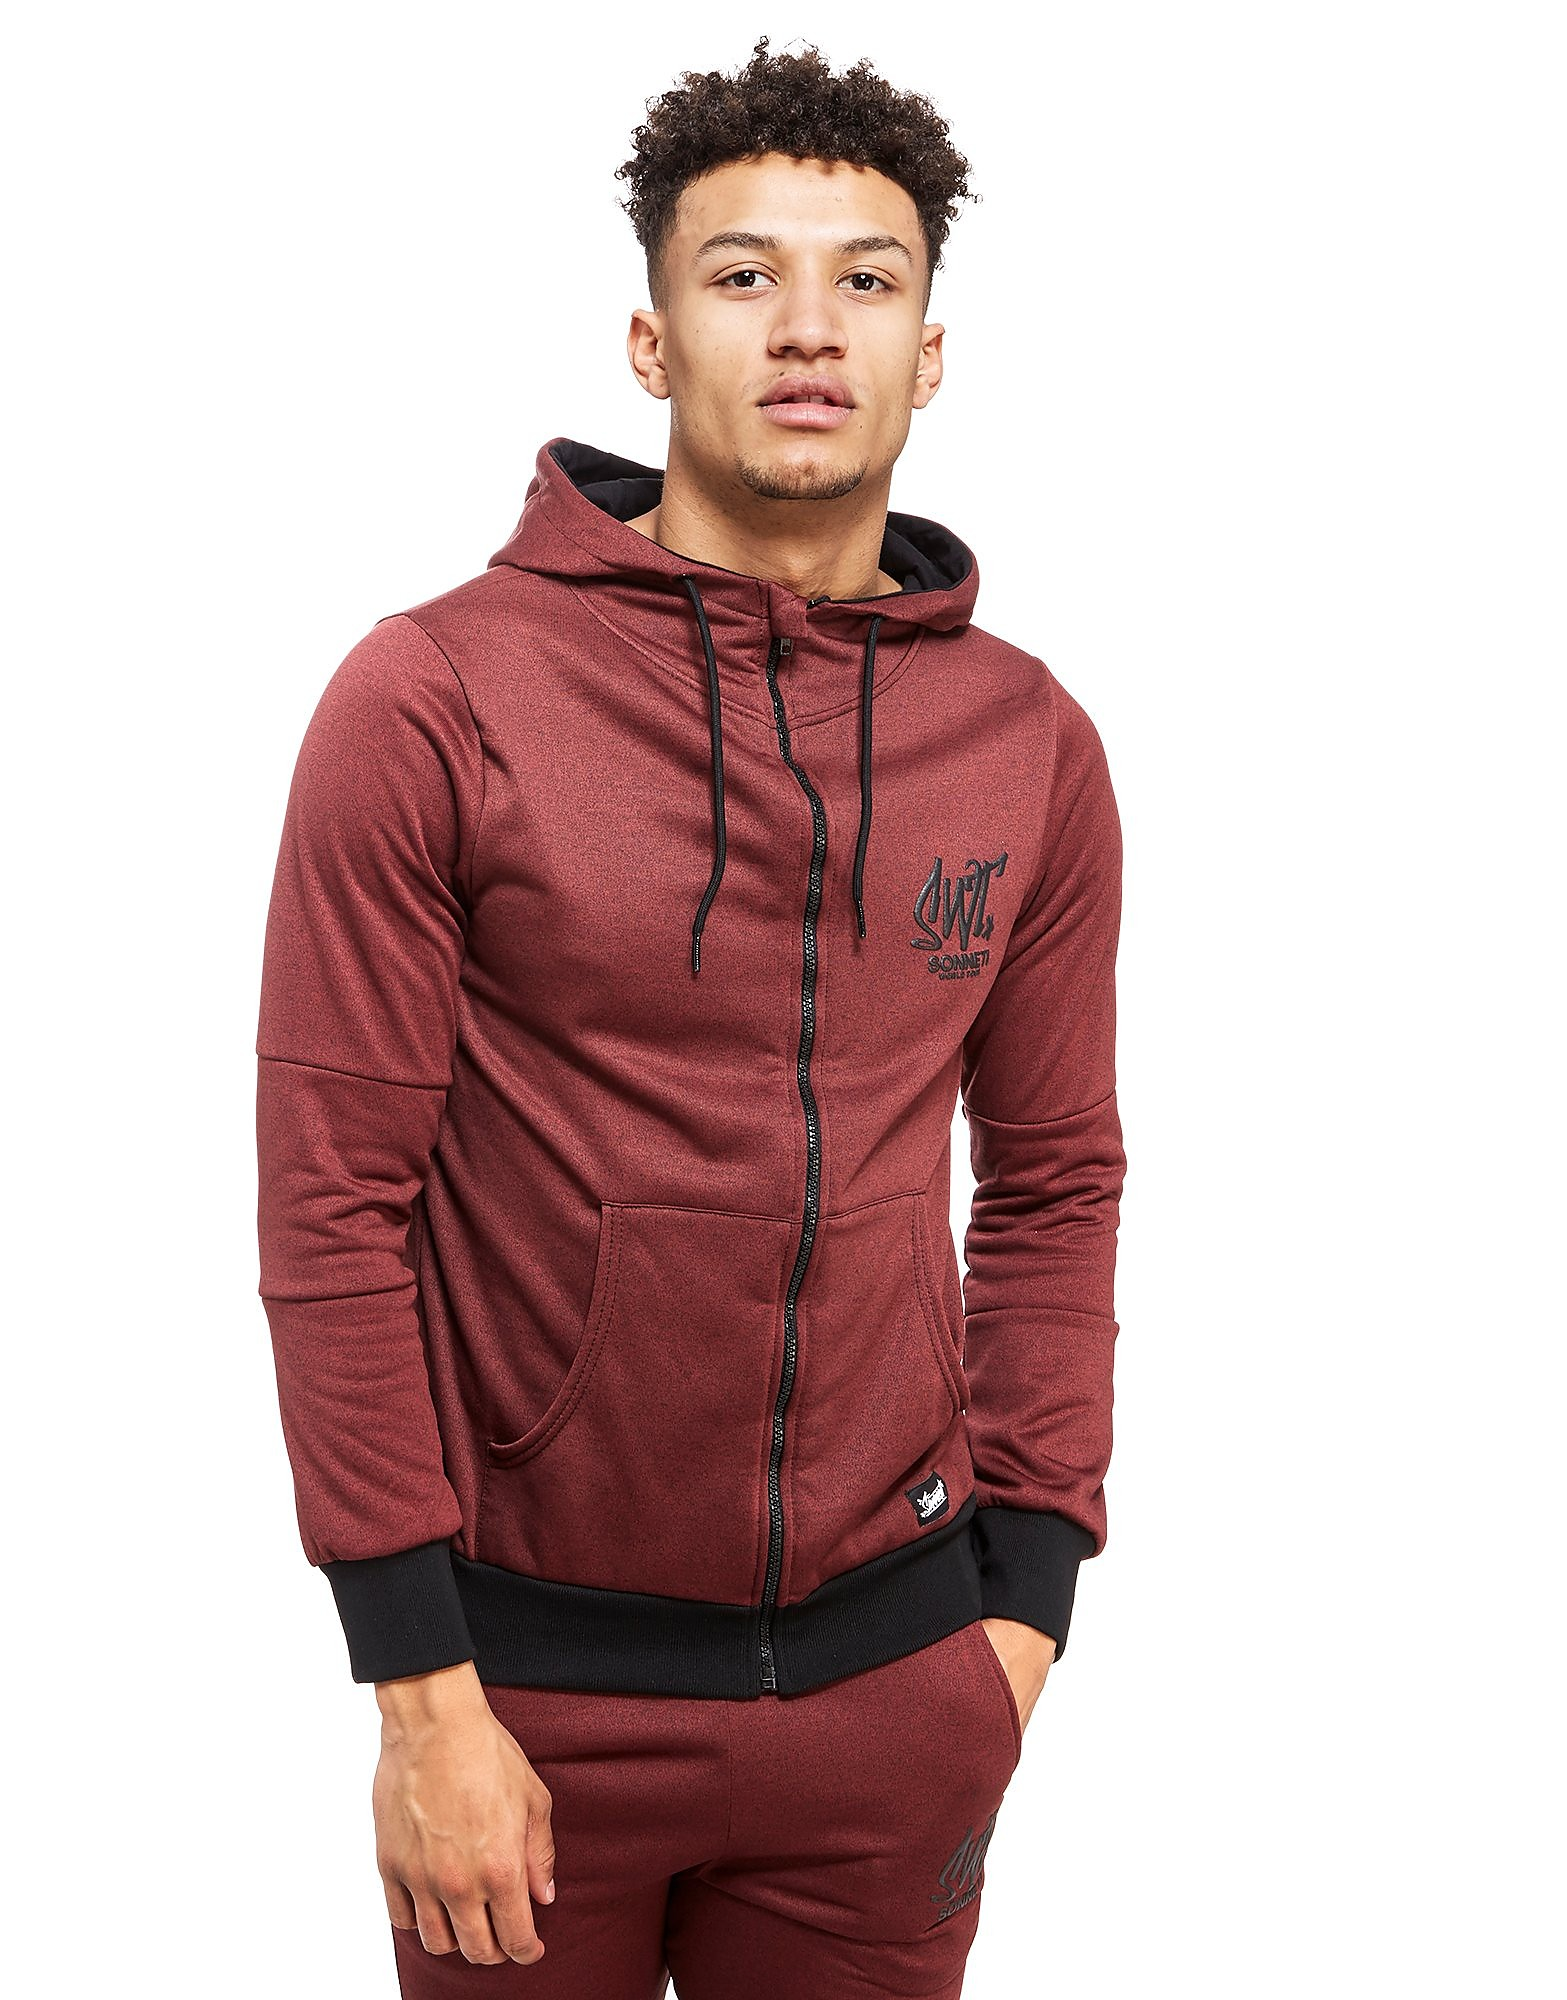 Sonneti Compounder Zip Hoody